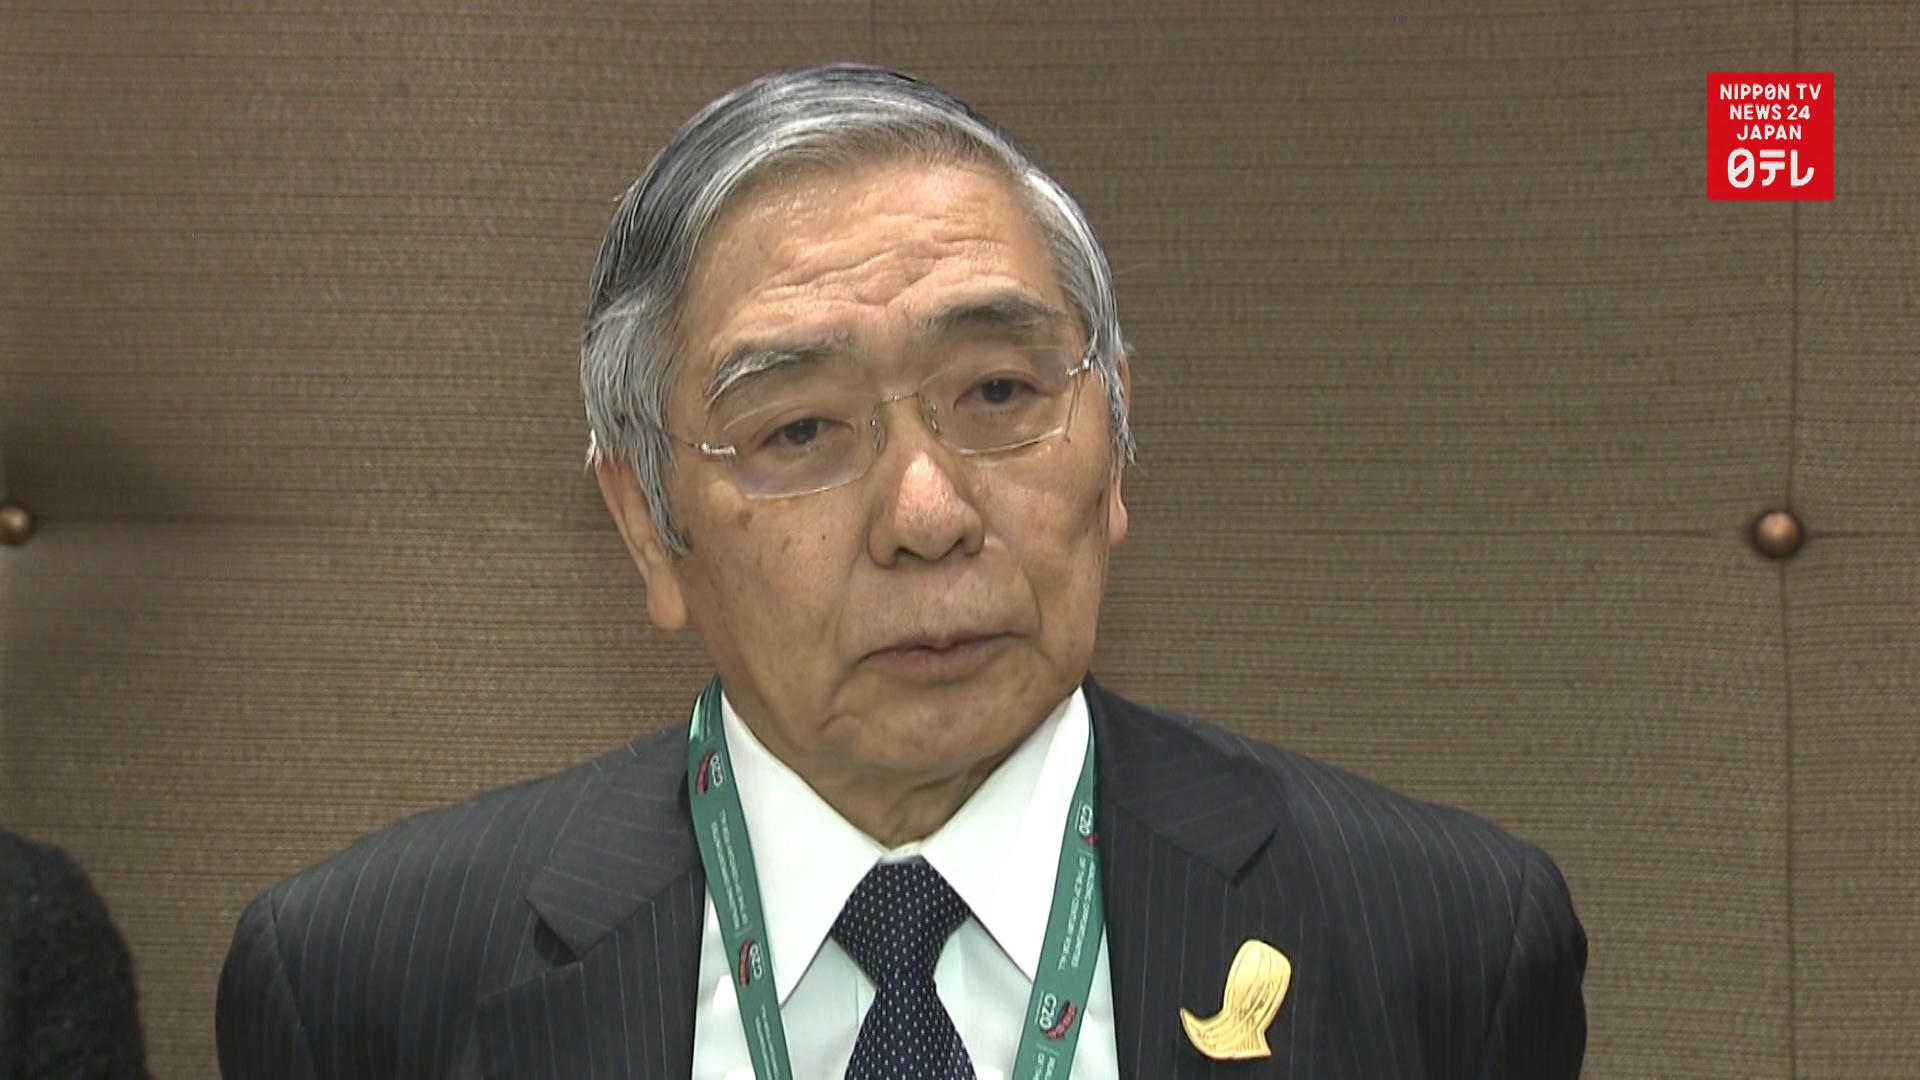 CORONAVIRUS: Bank of Japan to help stabilize markets